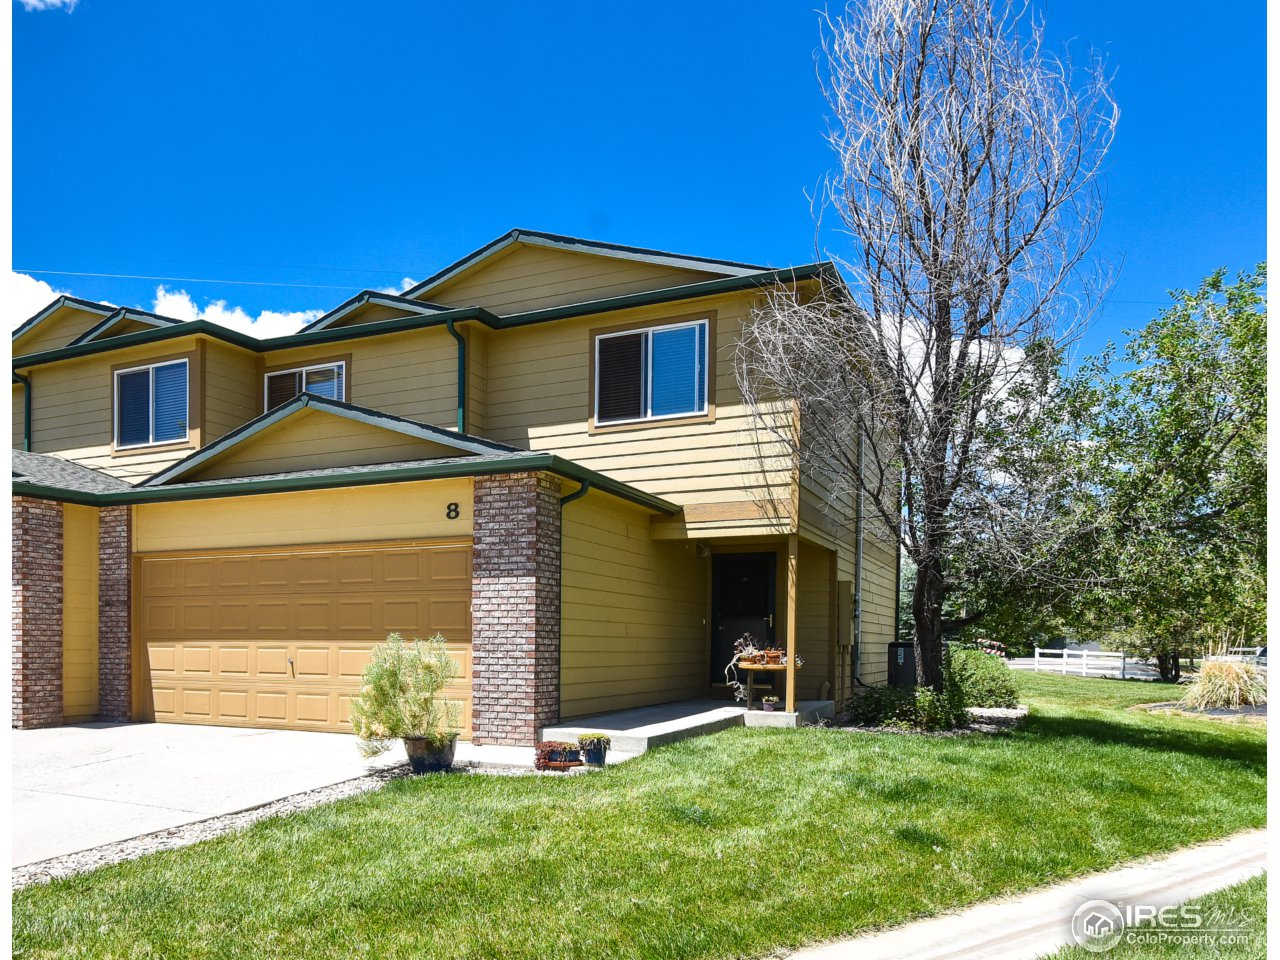 850 S Overland Trl 8, Fort Collins, CO 80521